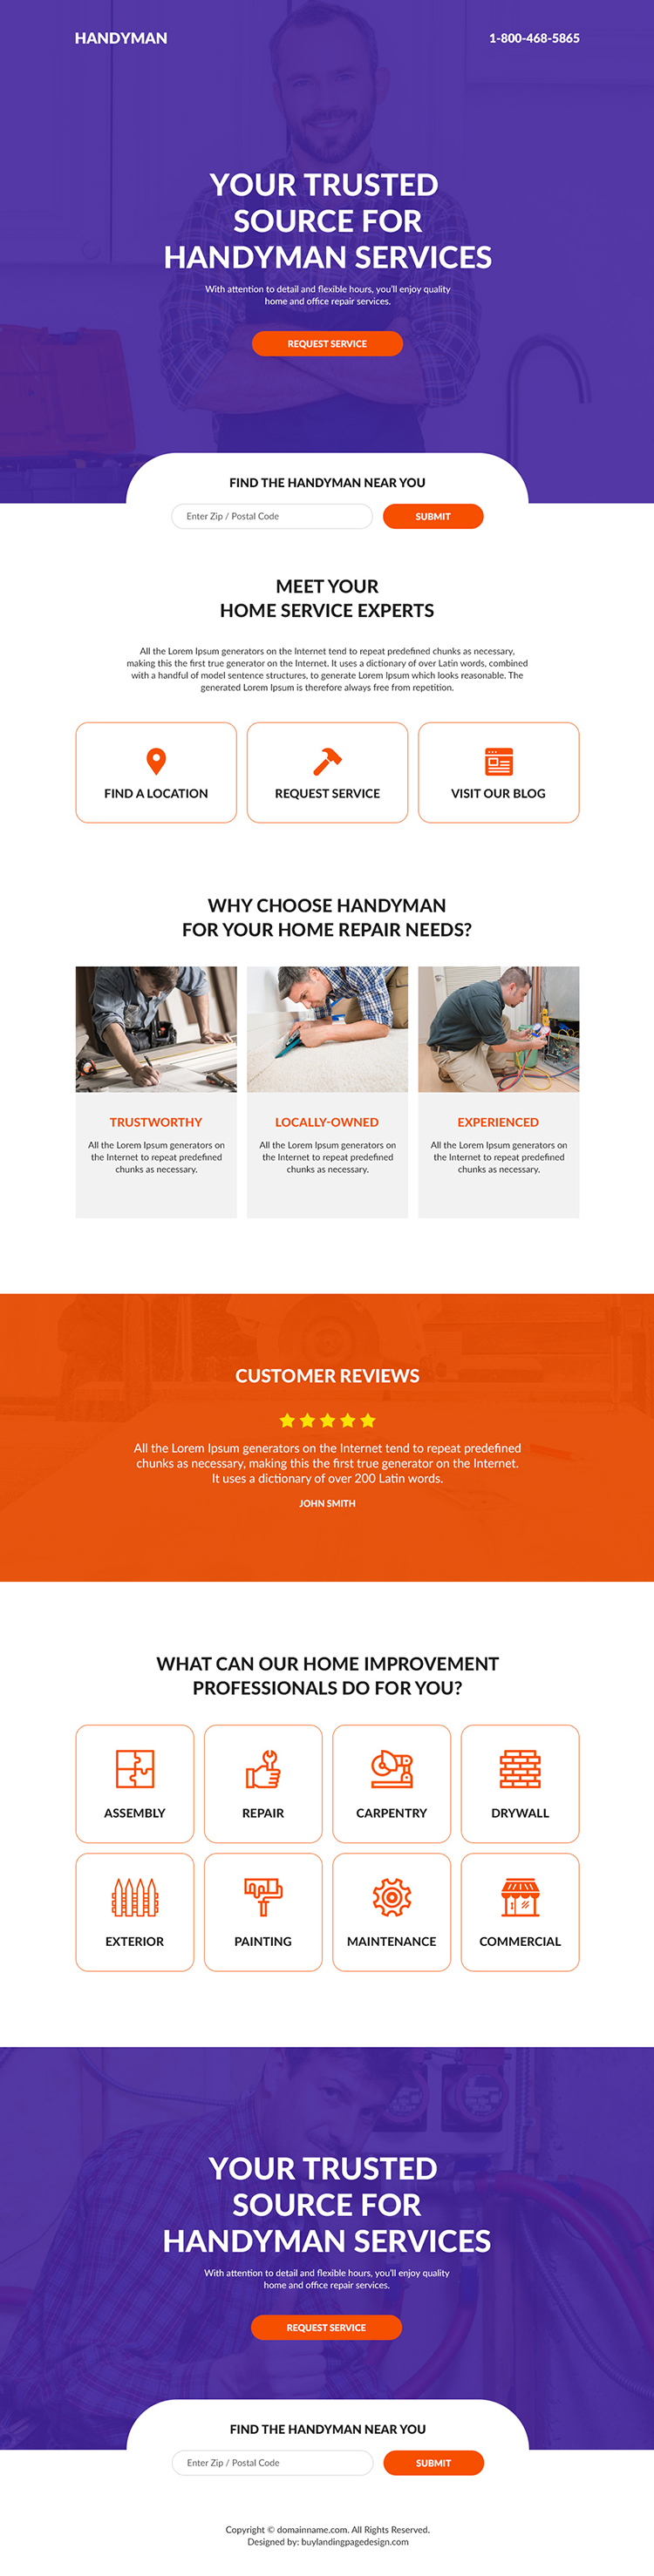 handyman services landing page design